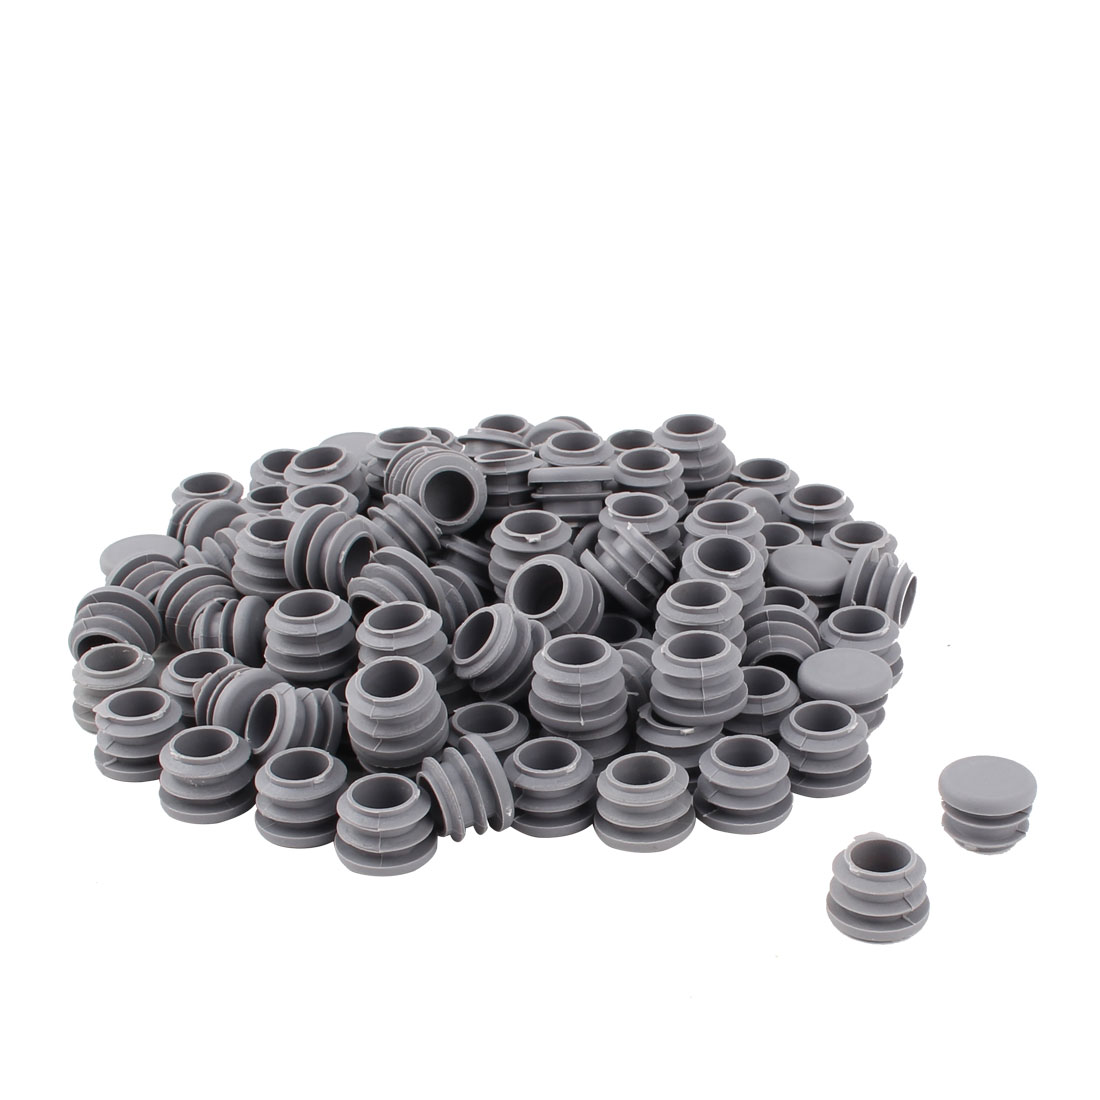 Furniture Table Chair Plastic Round Tube Pipe Insert Cover Protector Gray 19mm Dia 100pcs